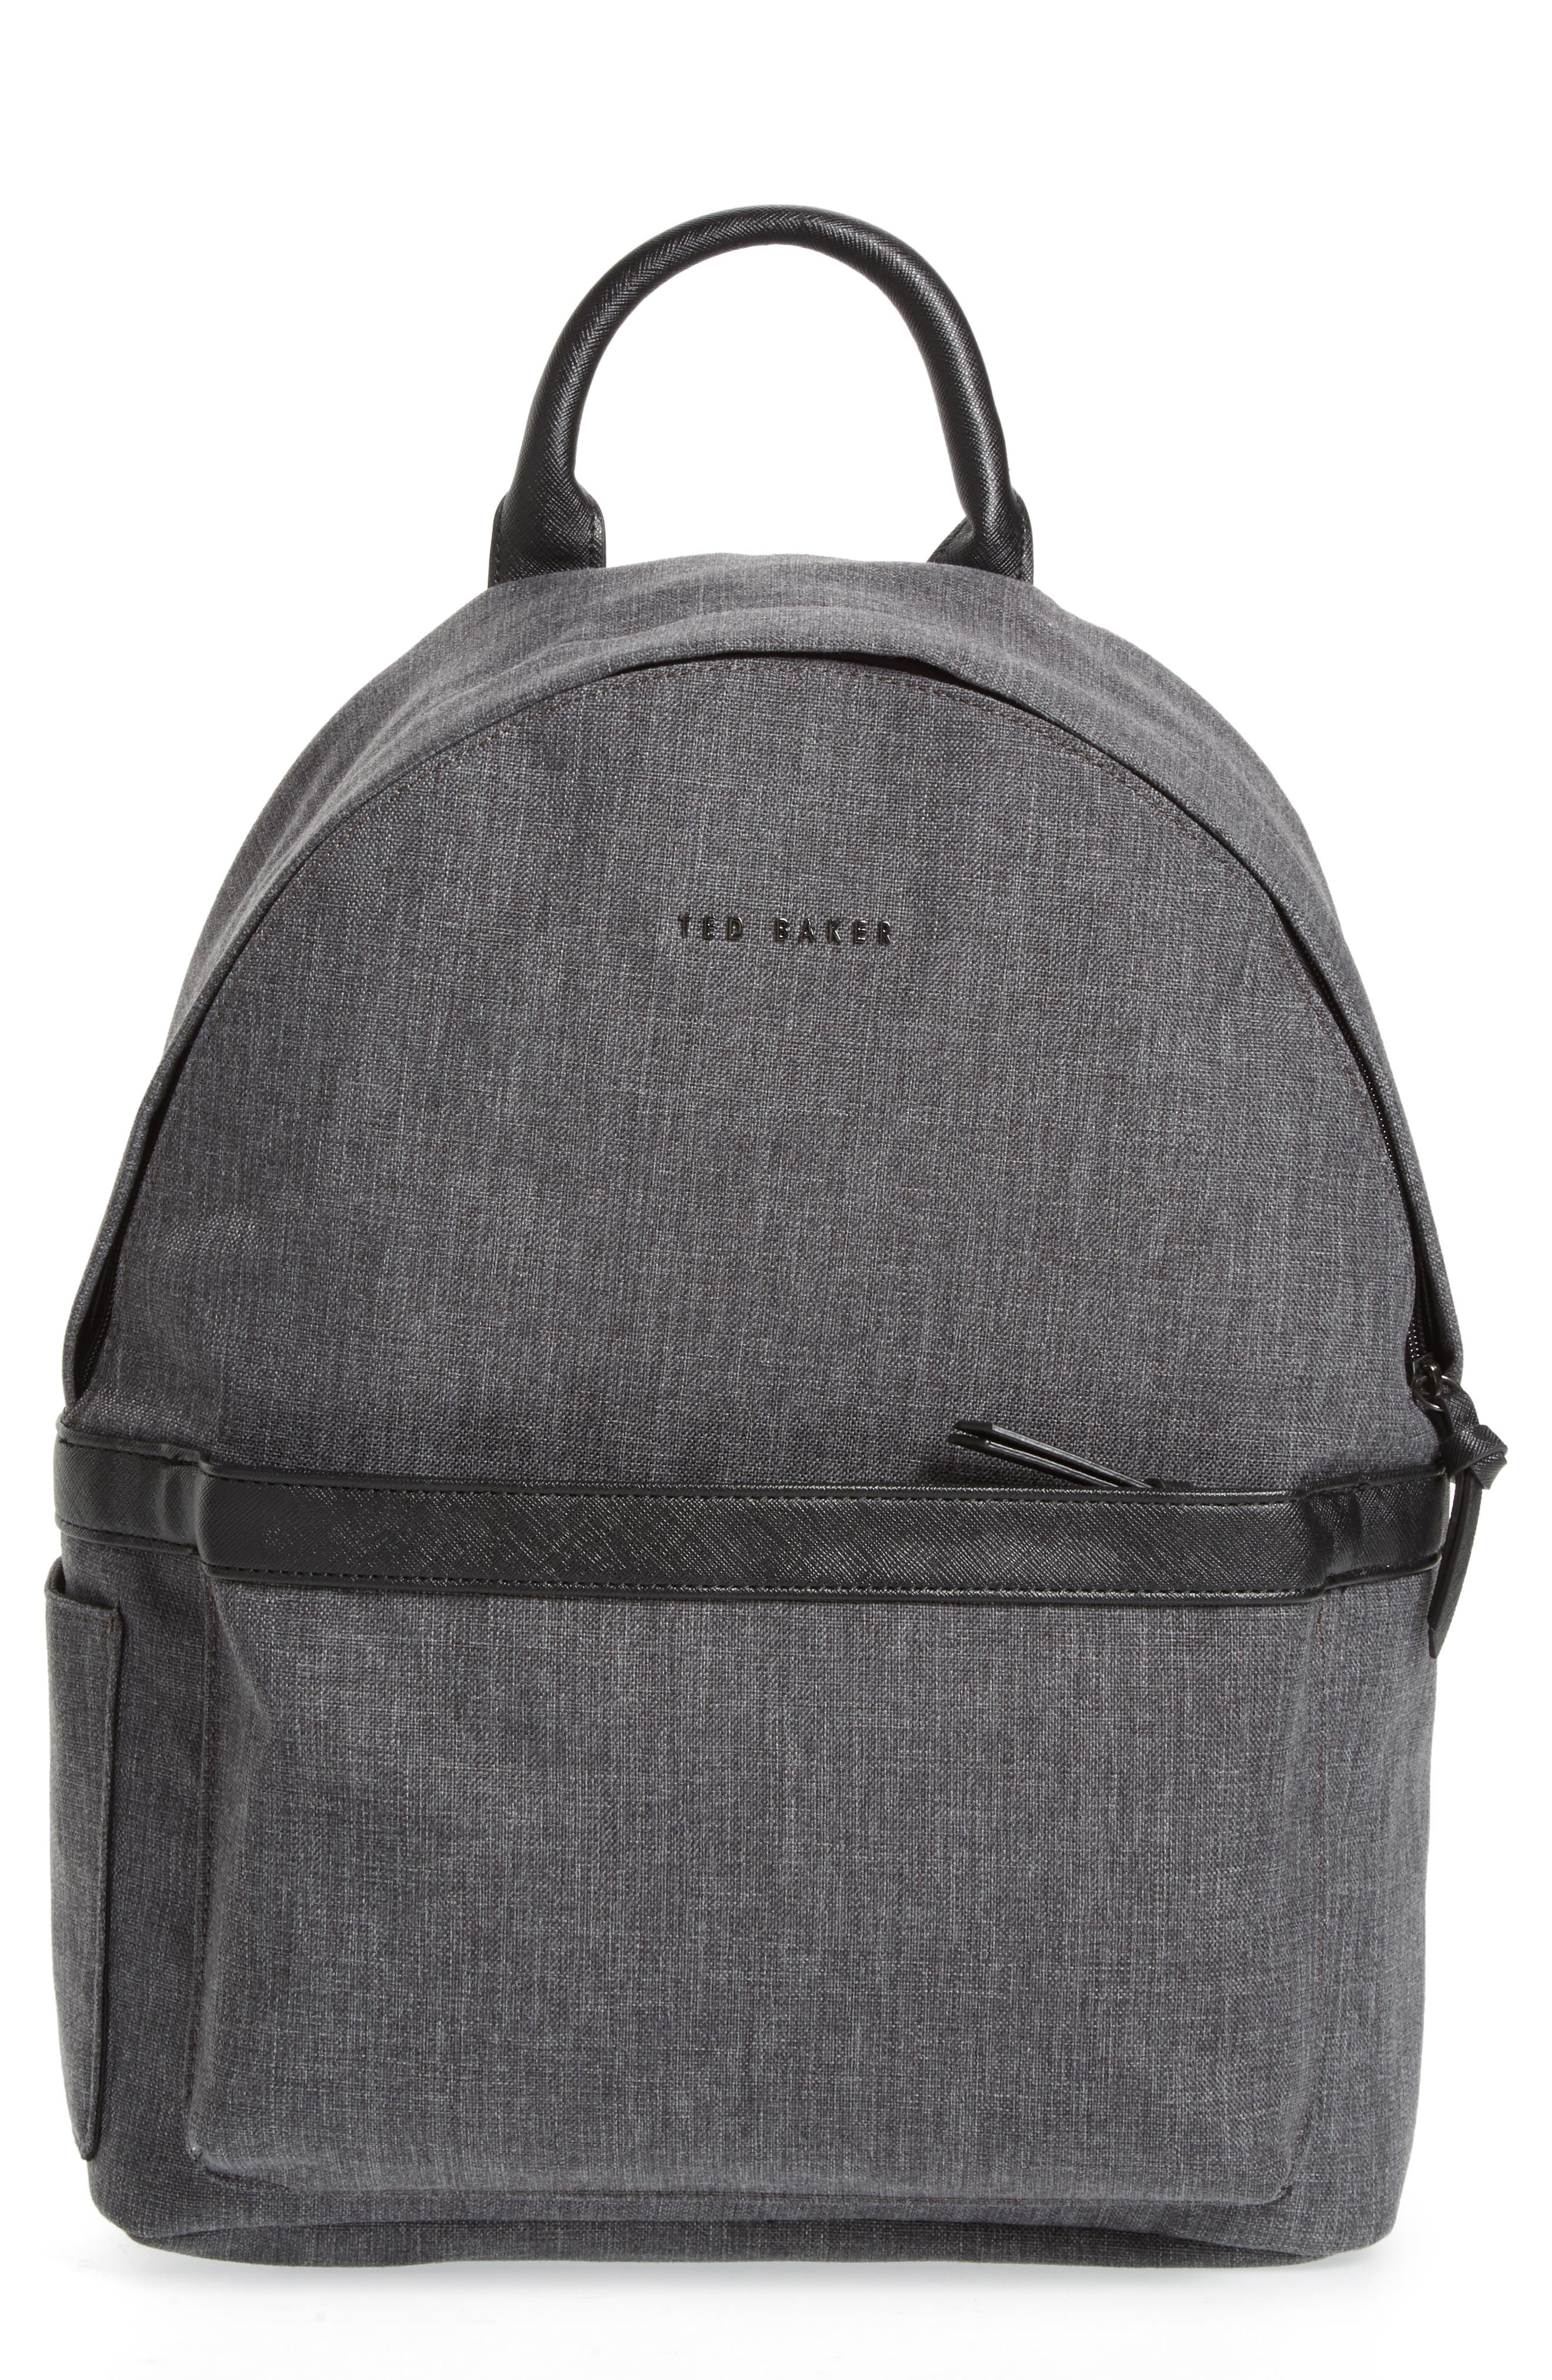 Ted Baker London Lychee Backpack